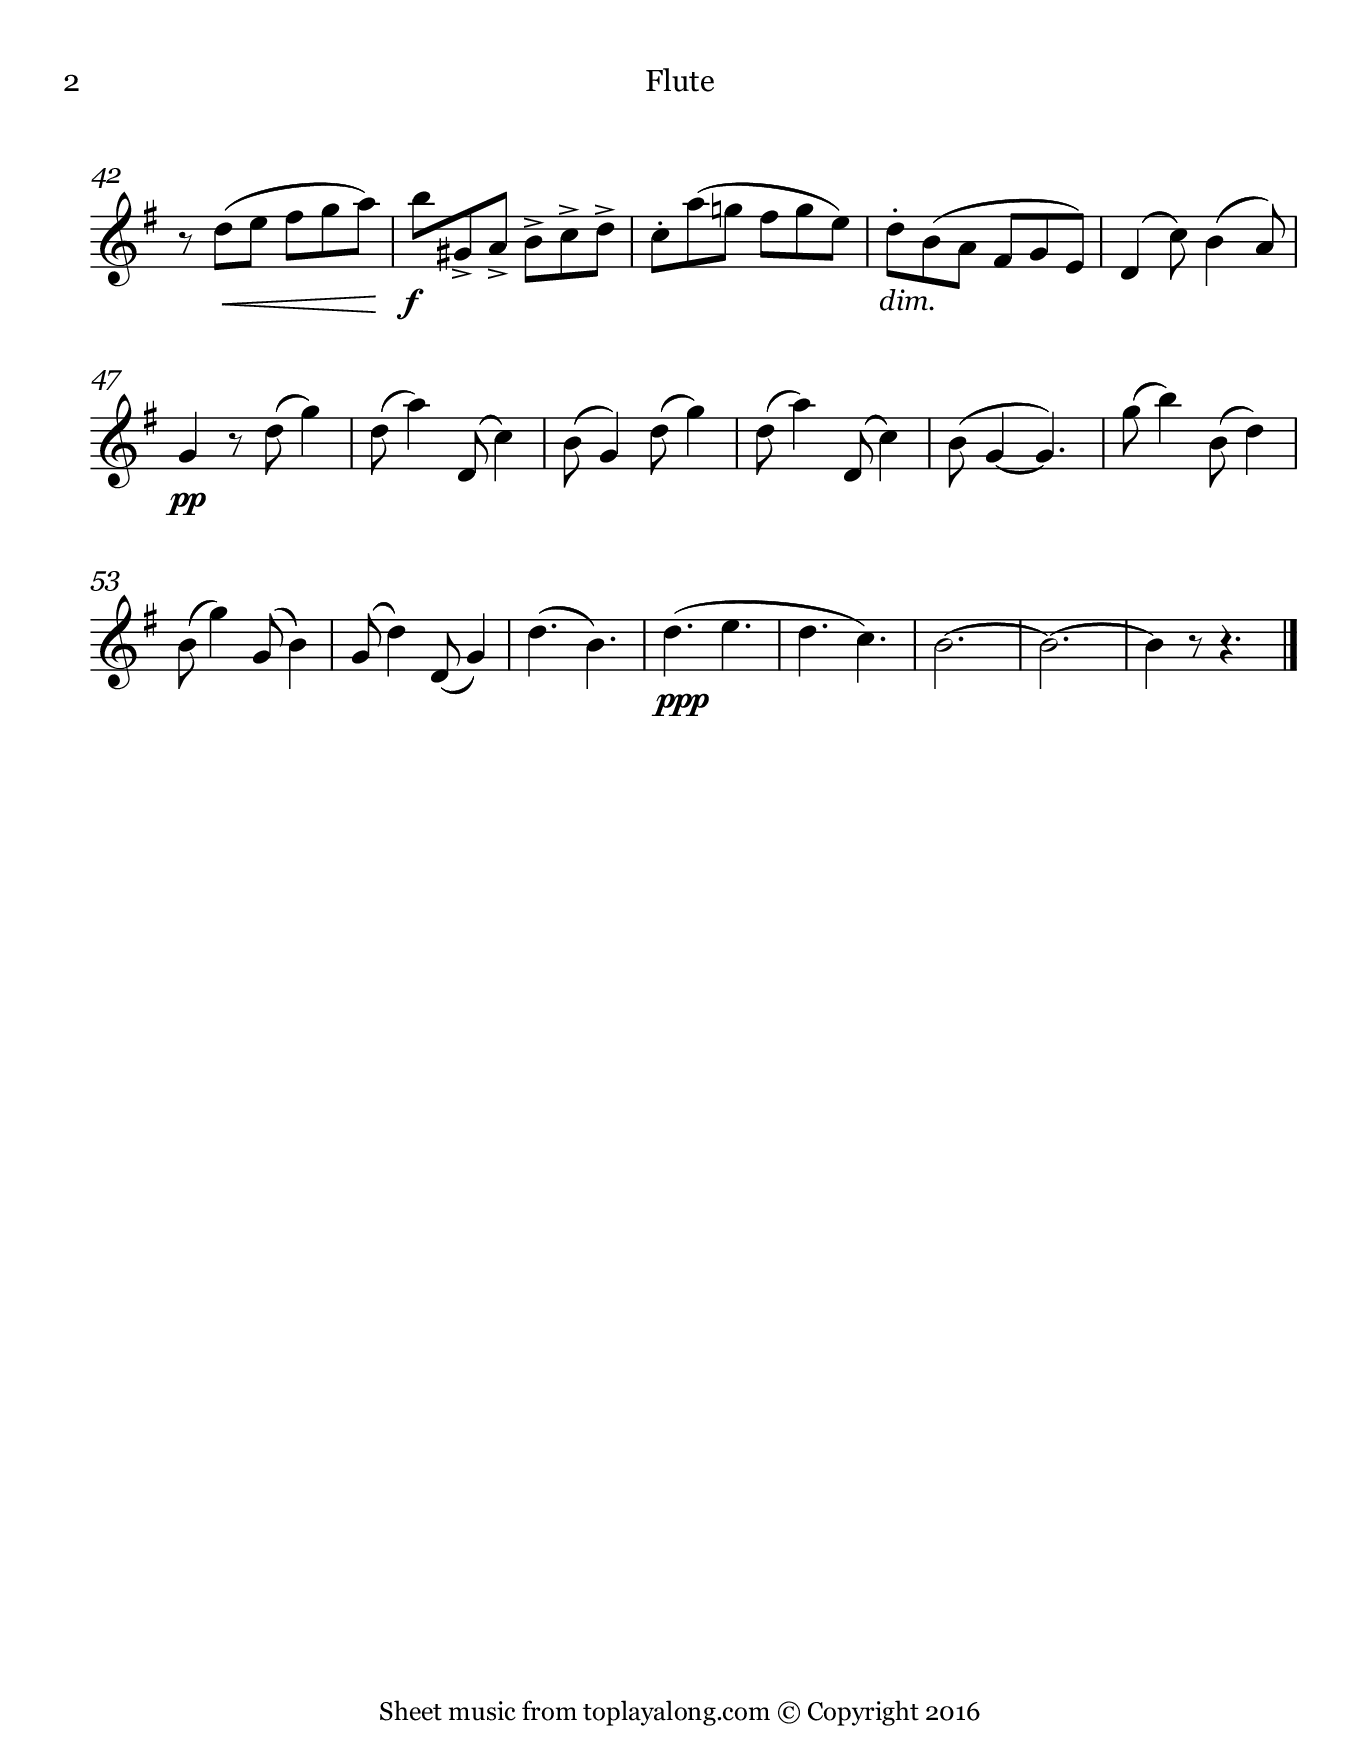 Barcarolle from The Tales of Hoffmann by Offenbach. Sheet music for Flute, page 2.